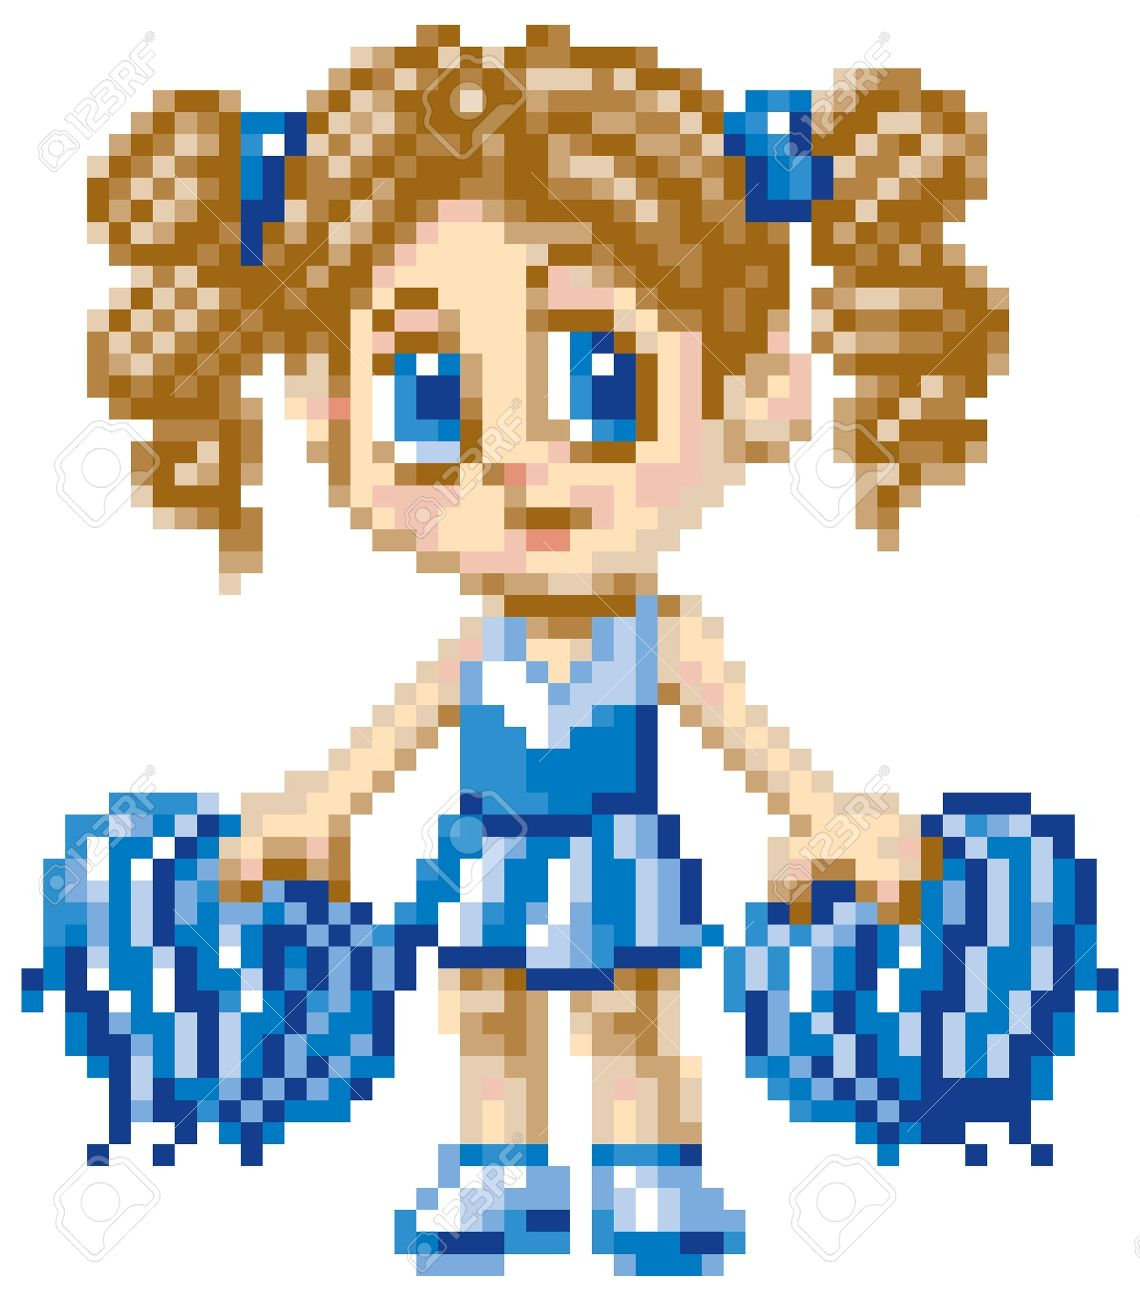 A Cheerleader Girl Illustrated In An Anime Or Manga Style Rendered